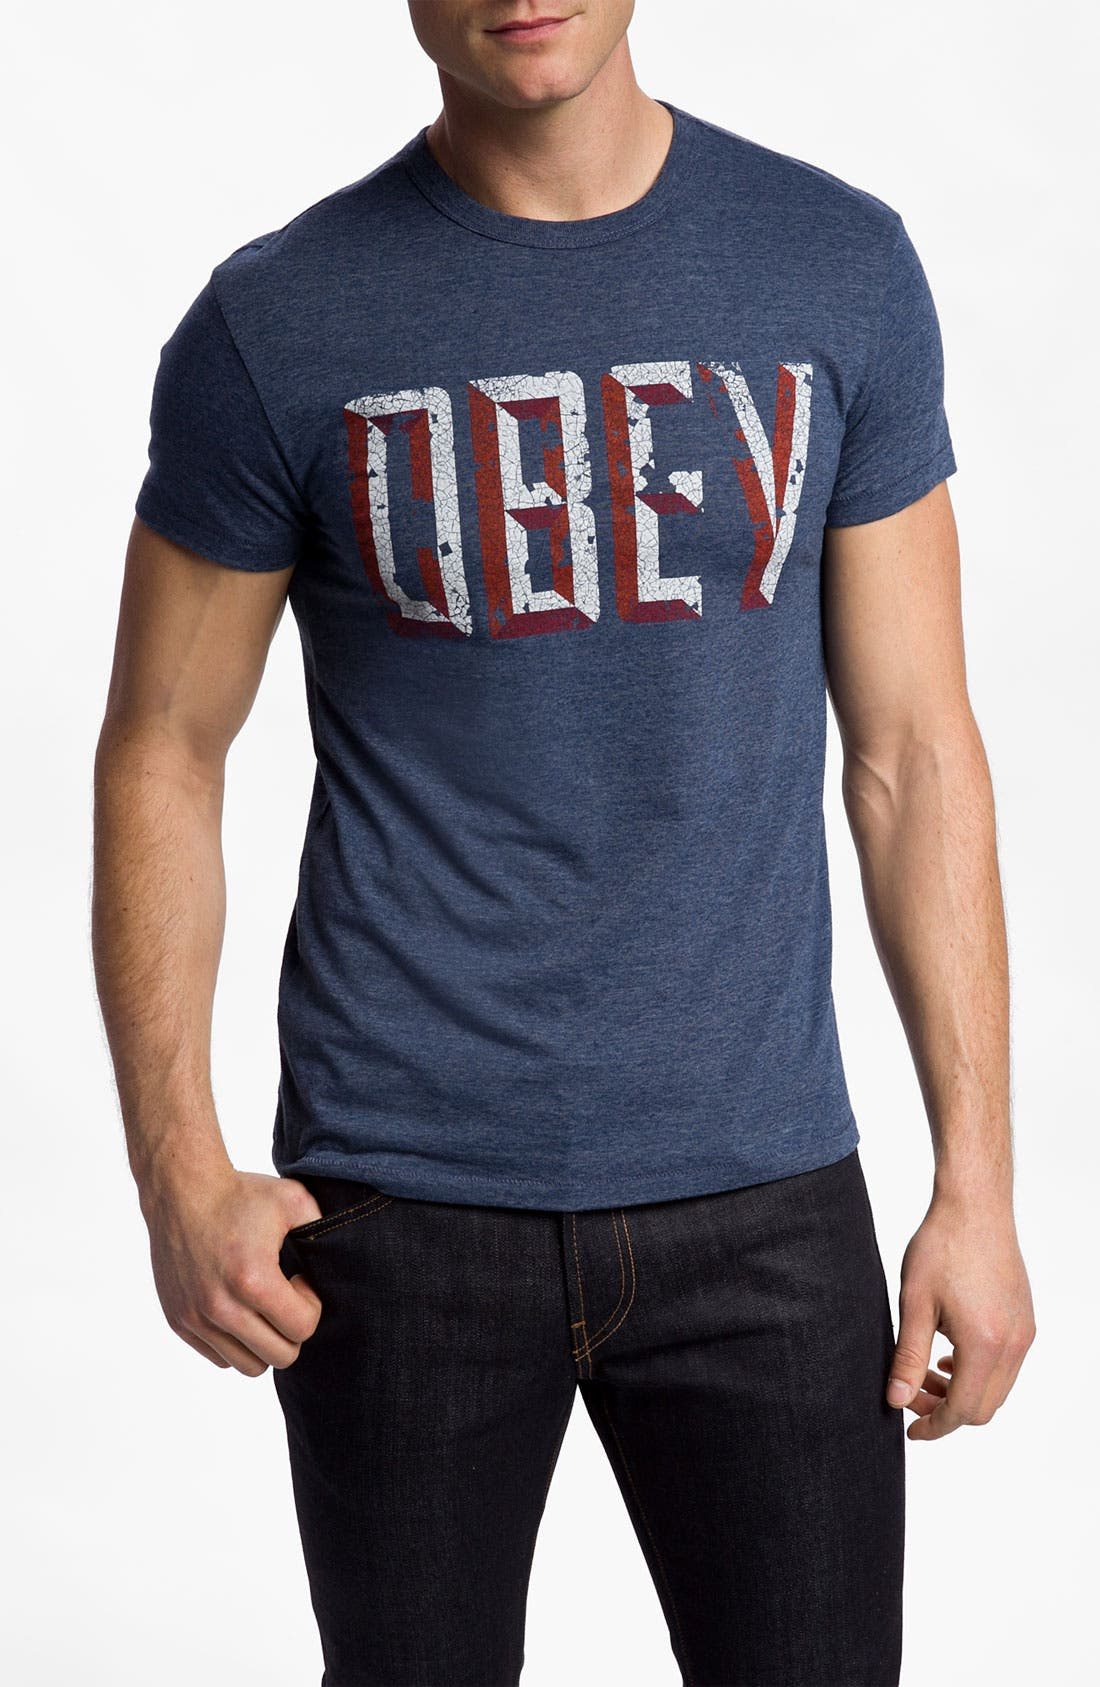 Alternate Image 1 Selected - Obey 'Urban Decay' T-Shirt